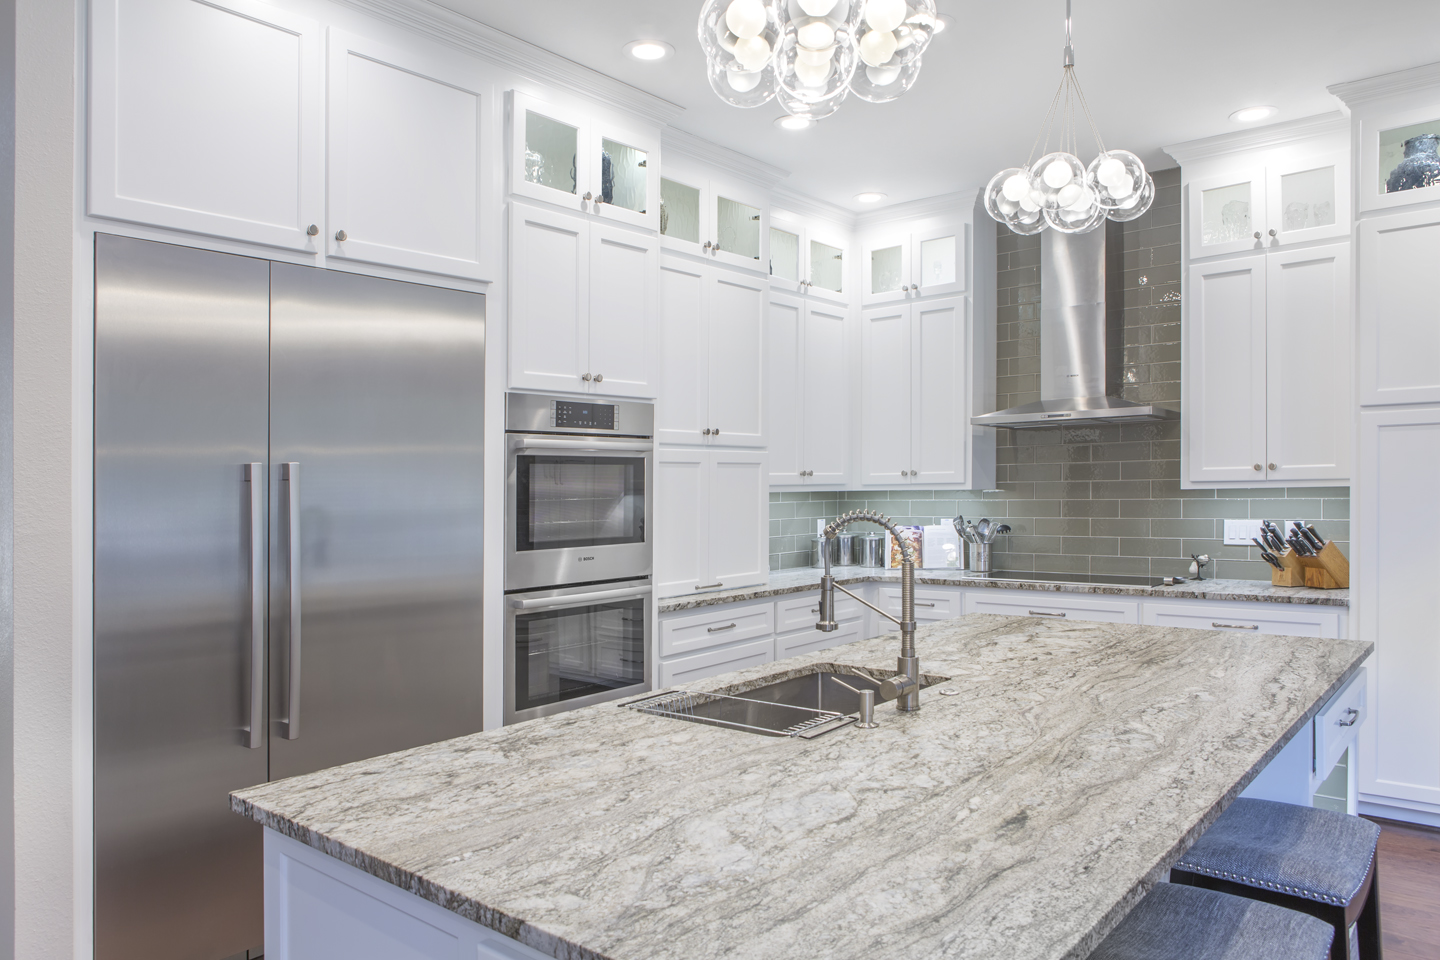 Stunning remodeled kitchen with island